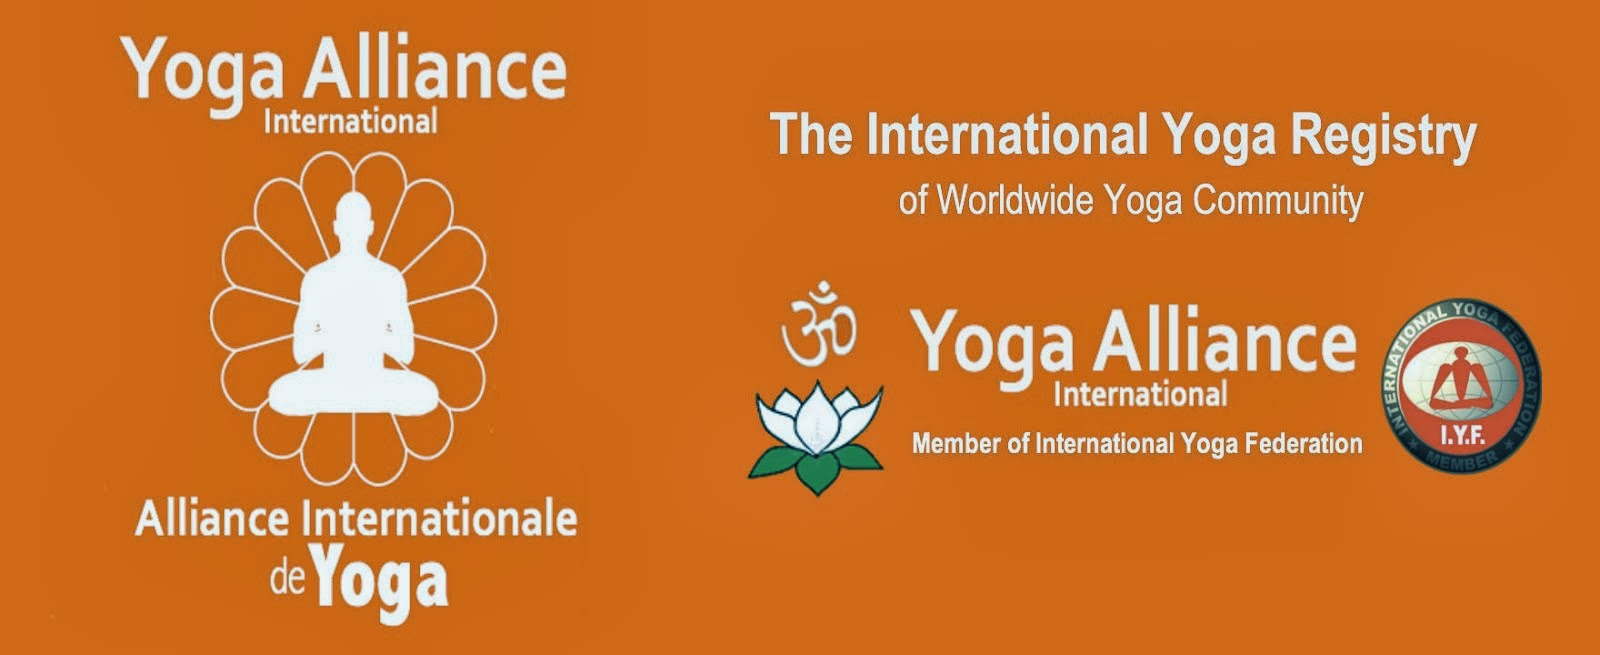 YOGA ALLIANCE INTERNACIONAL